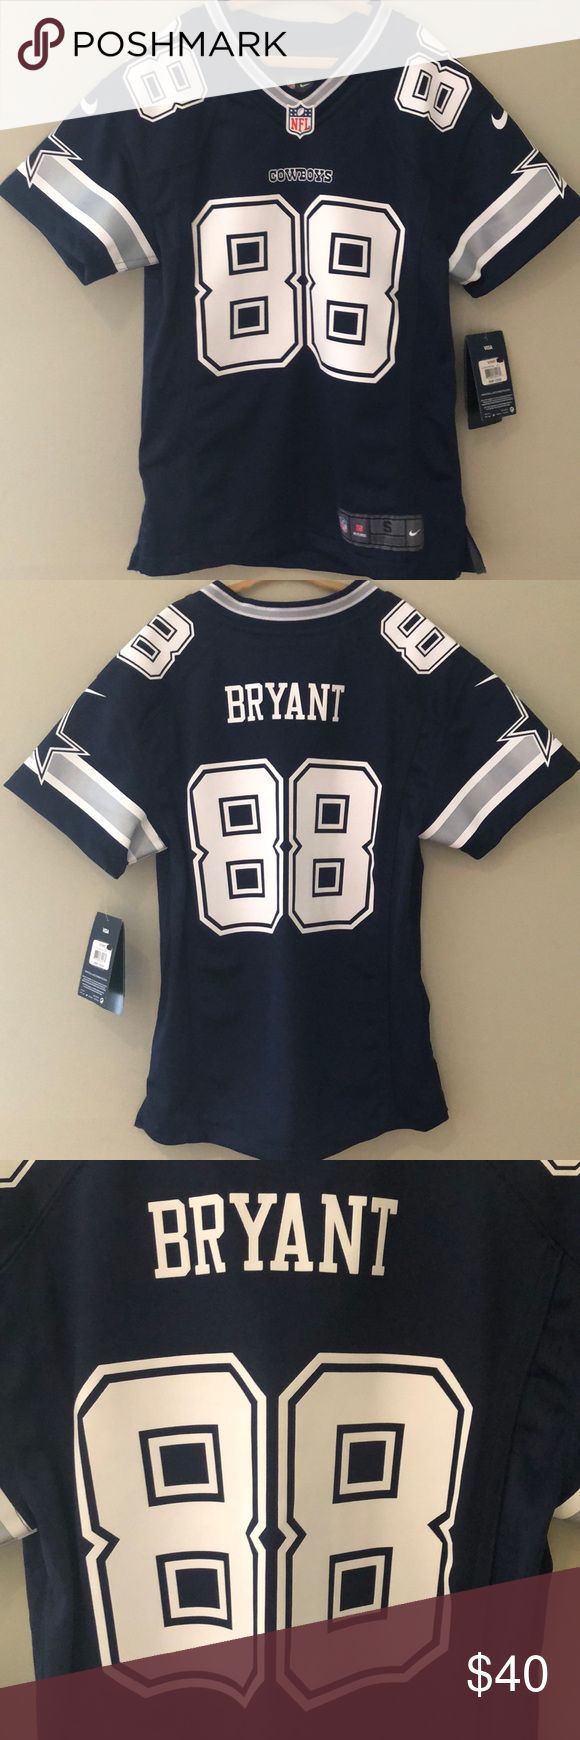 Nike Dez Bryant Dallas Cowboys Jersey Kids Small Nike Dez Bryant Dallas Cowboys Jersey Kids Size Small Nike Shirts & Tops Tees - Short Sleeve #dezbryantjersey Nike Dez Bryant Dallas Cowboys Jersey Kids Small Nike Dez Bryant Dallas Cowboys Jersey Kids Size Small Nike Shirts & Tops Tees - Short Sleeve #dezbryantjersey Nike Dez Bryant Dallas Cowboys Jersey Kids Small Nike Dez Bryant Dallas Cowboys Jersey Kids Size Small Nike Shirts & Tops Tees - Short Sleeve #dezbryantjersey Nike Dez Bryant Dallas #dezbryant